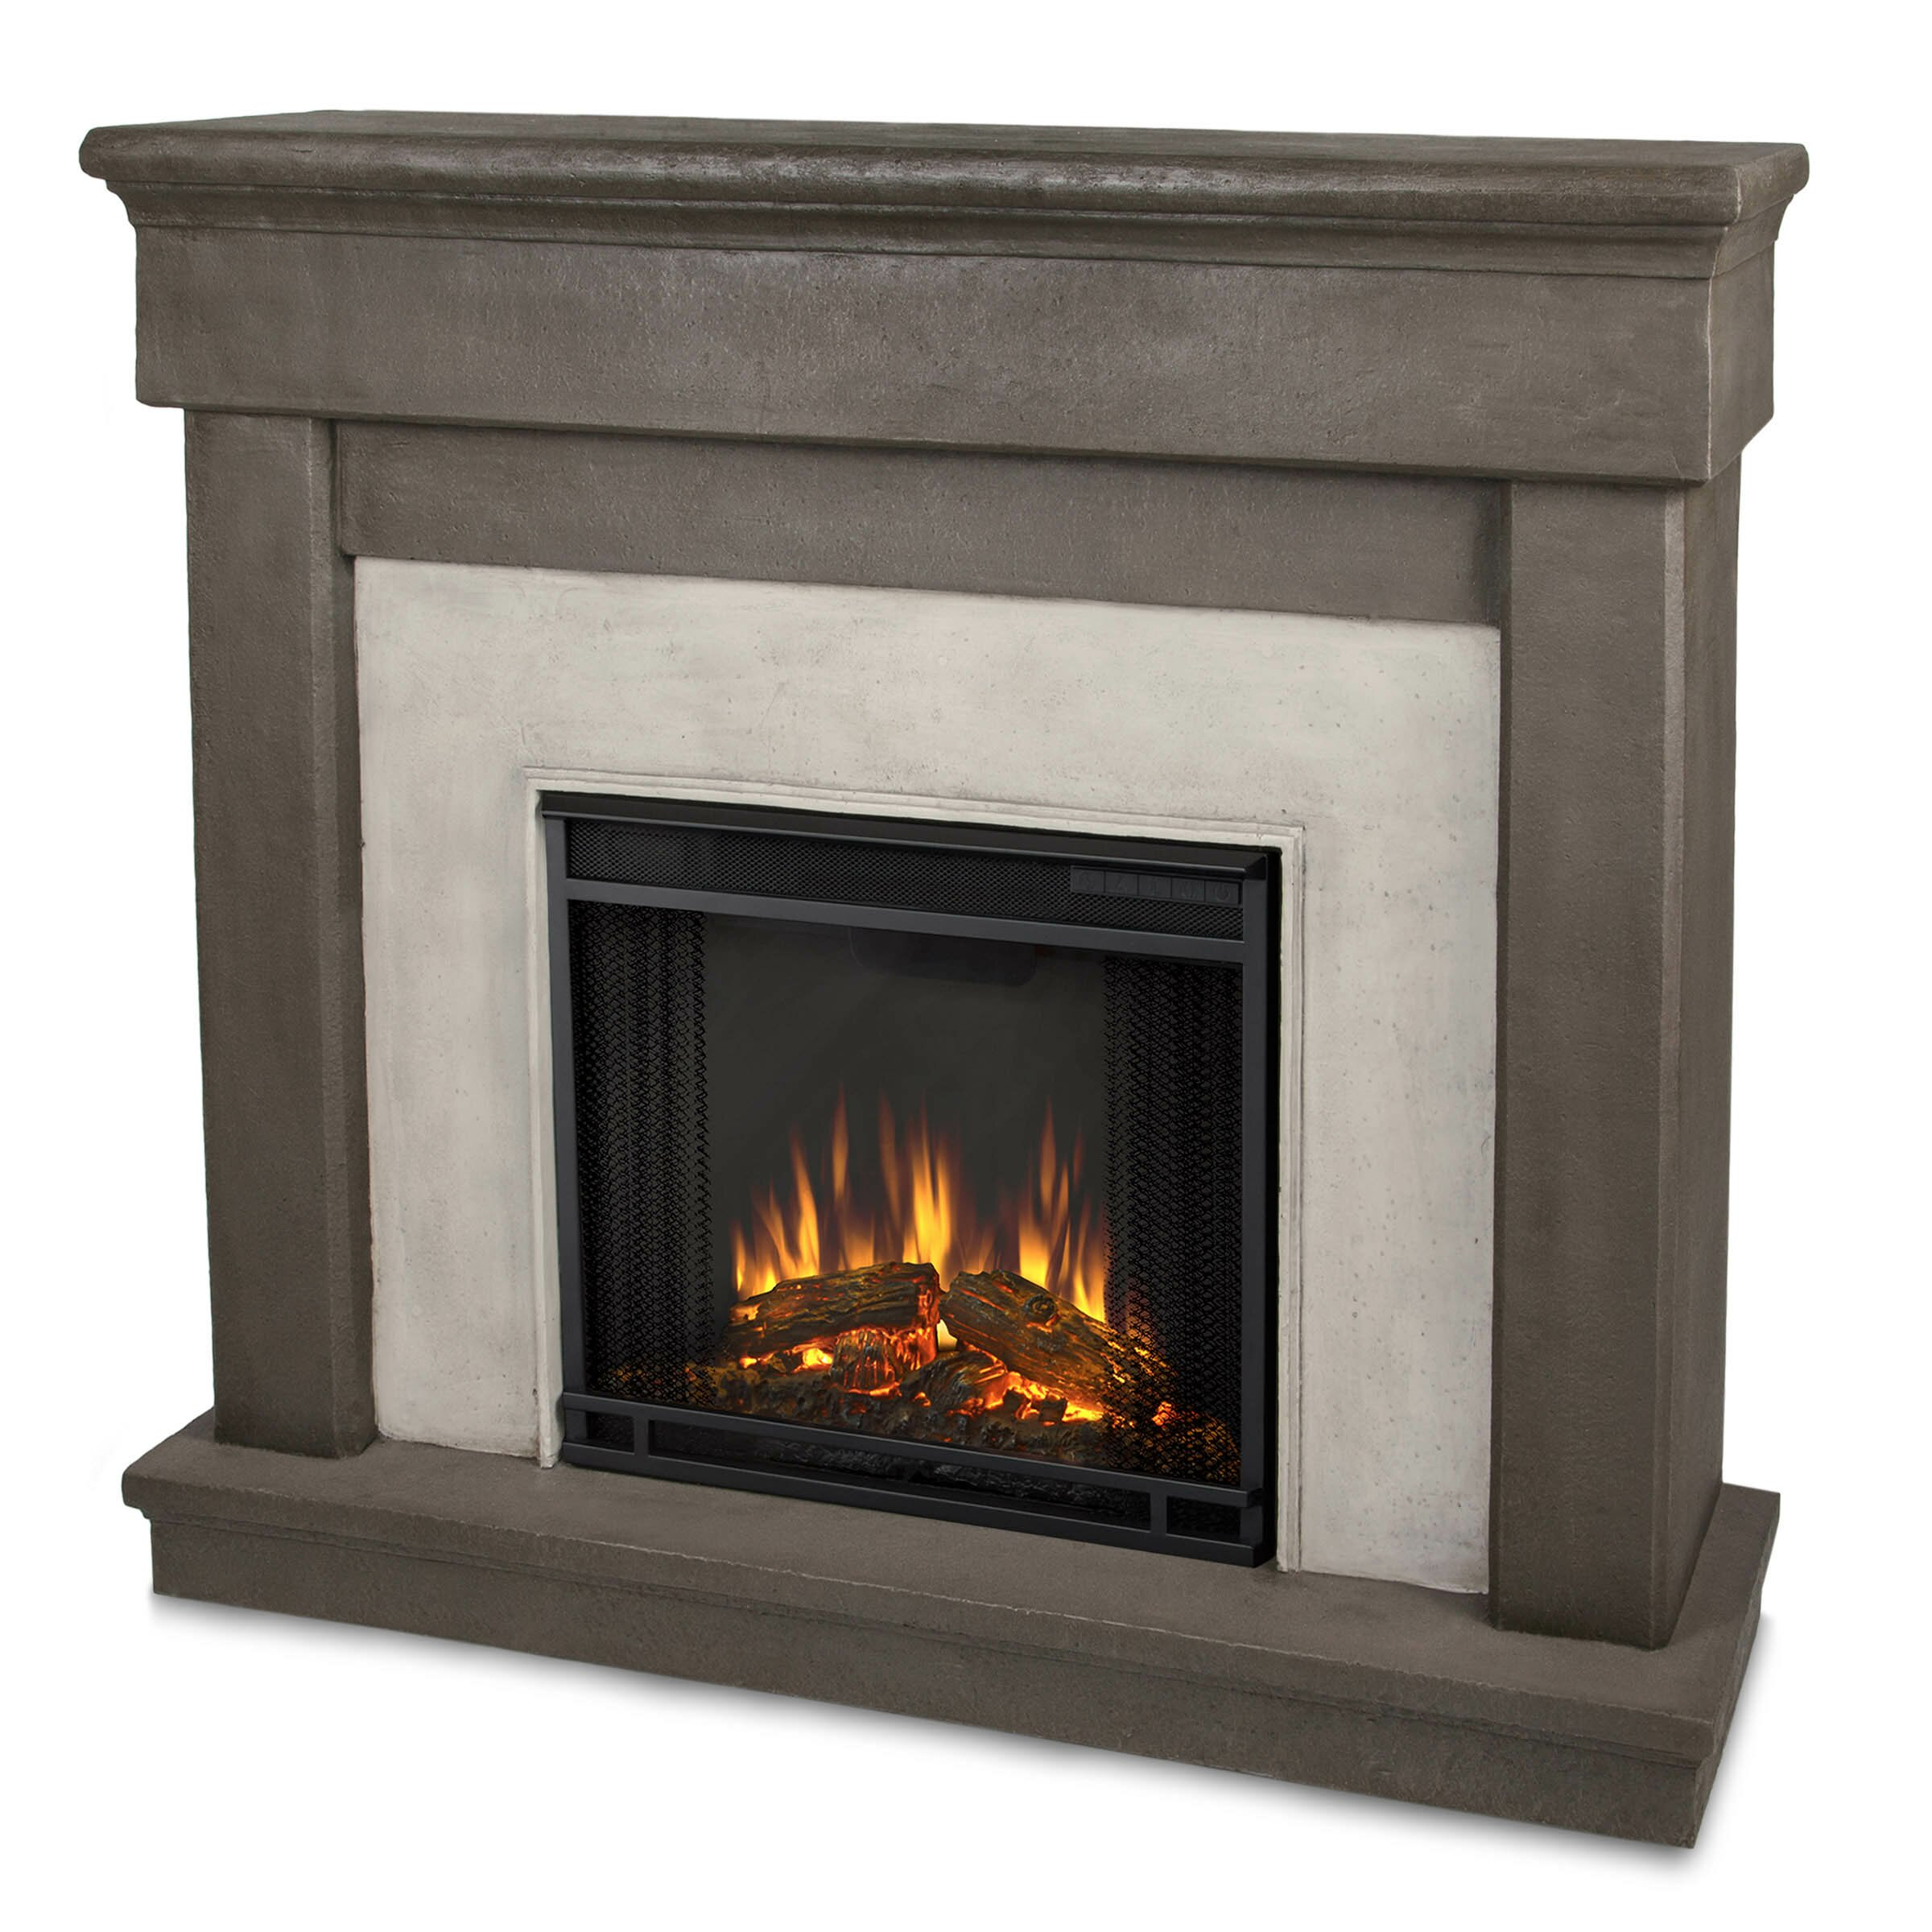 Real Flame Cast Mantel Cascade Electric Fireplace Reviews Wayfair